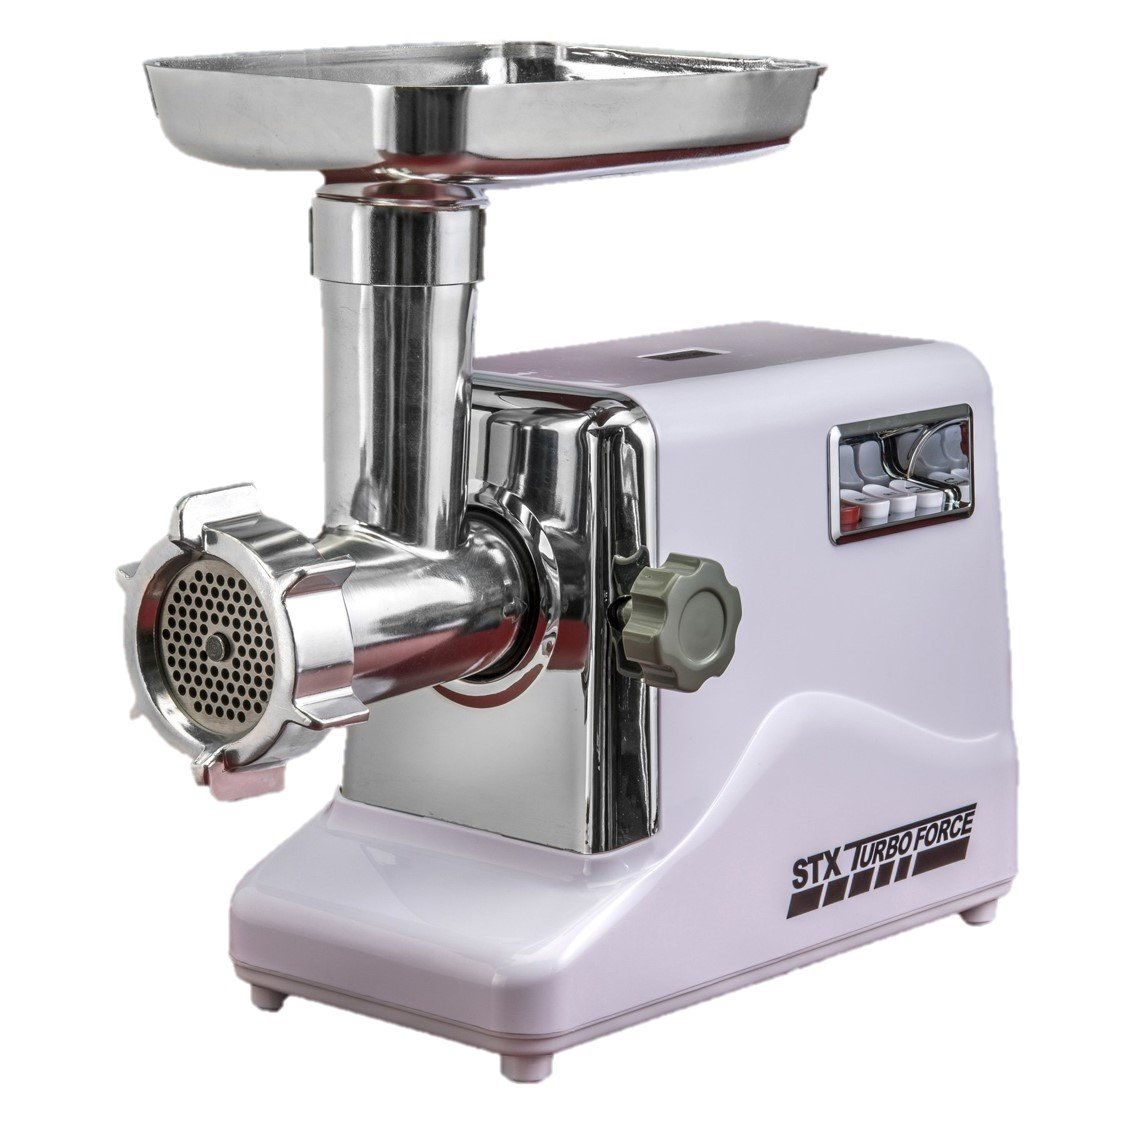 What To Look For While Buying A Kitchen Meat Grinder?